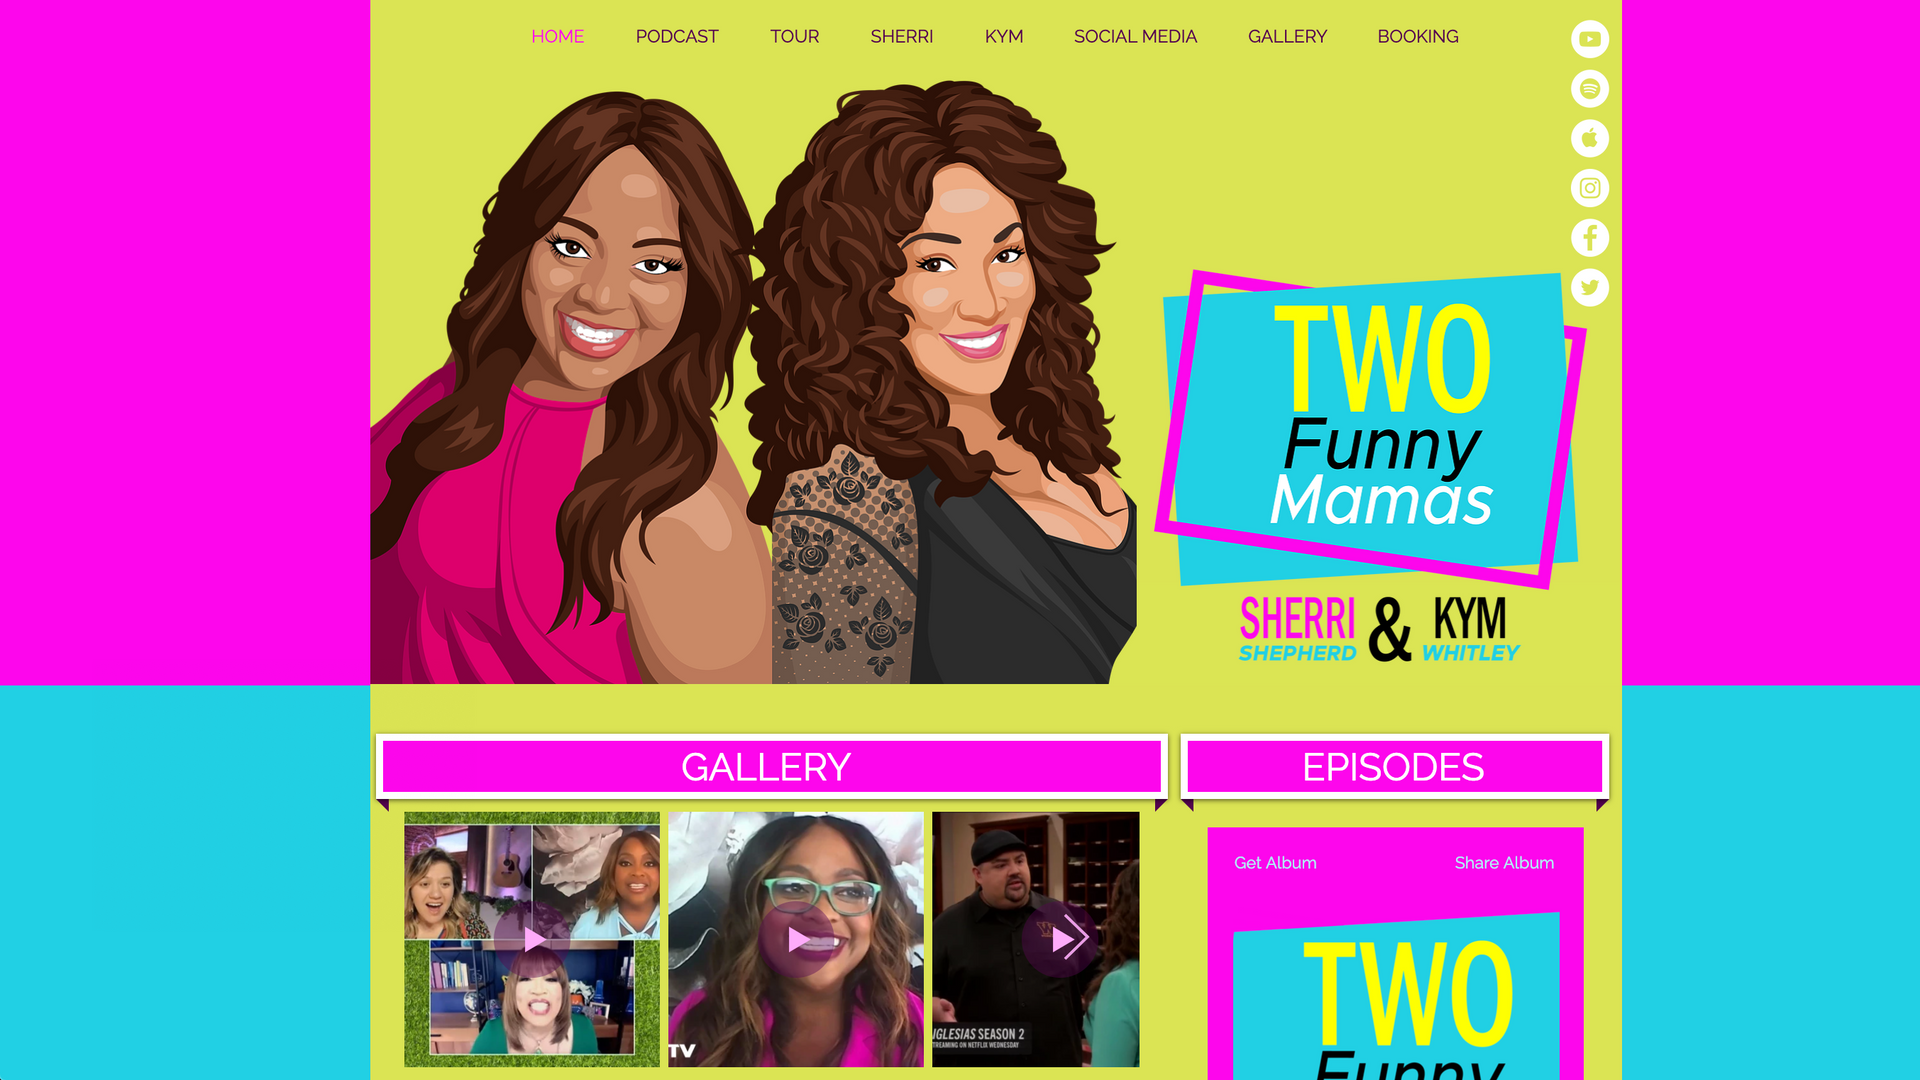 Two Funny Mamas Podcast